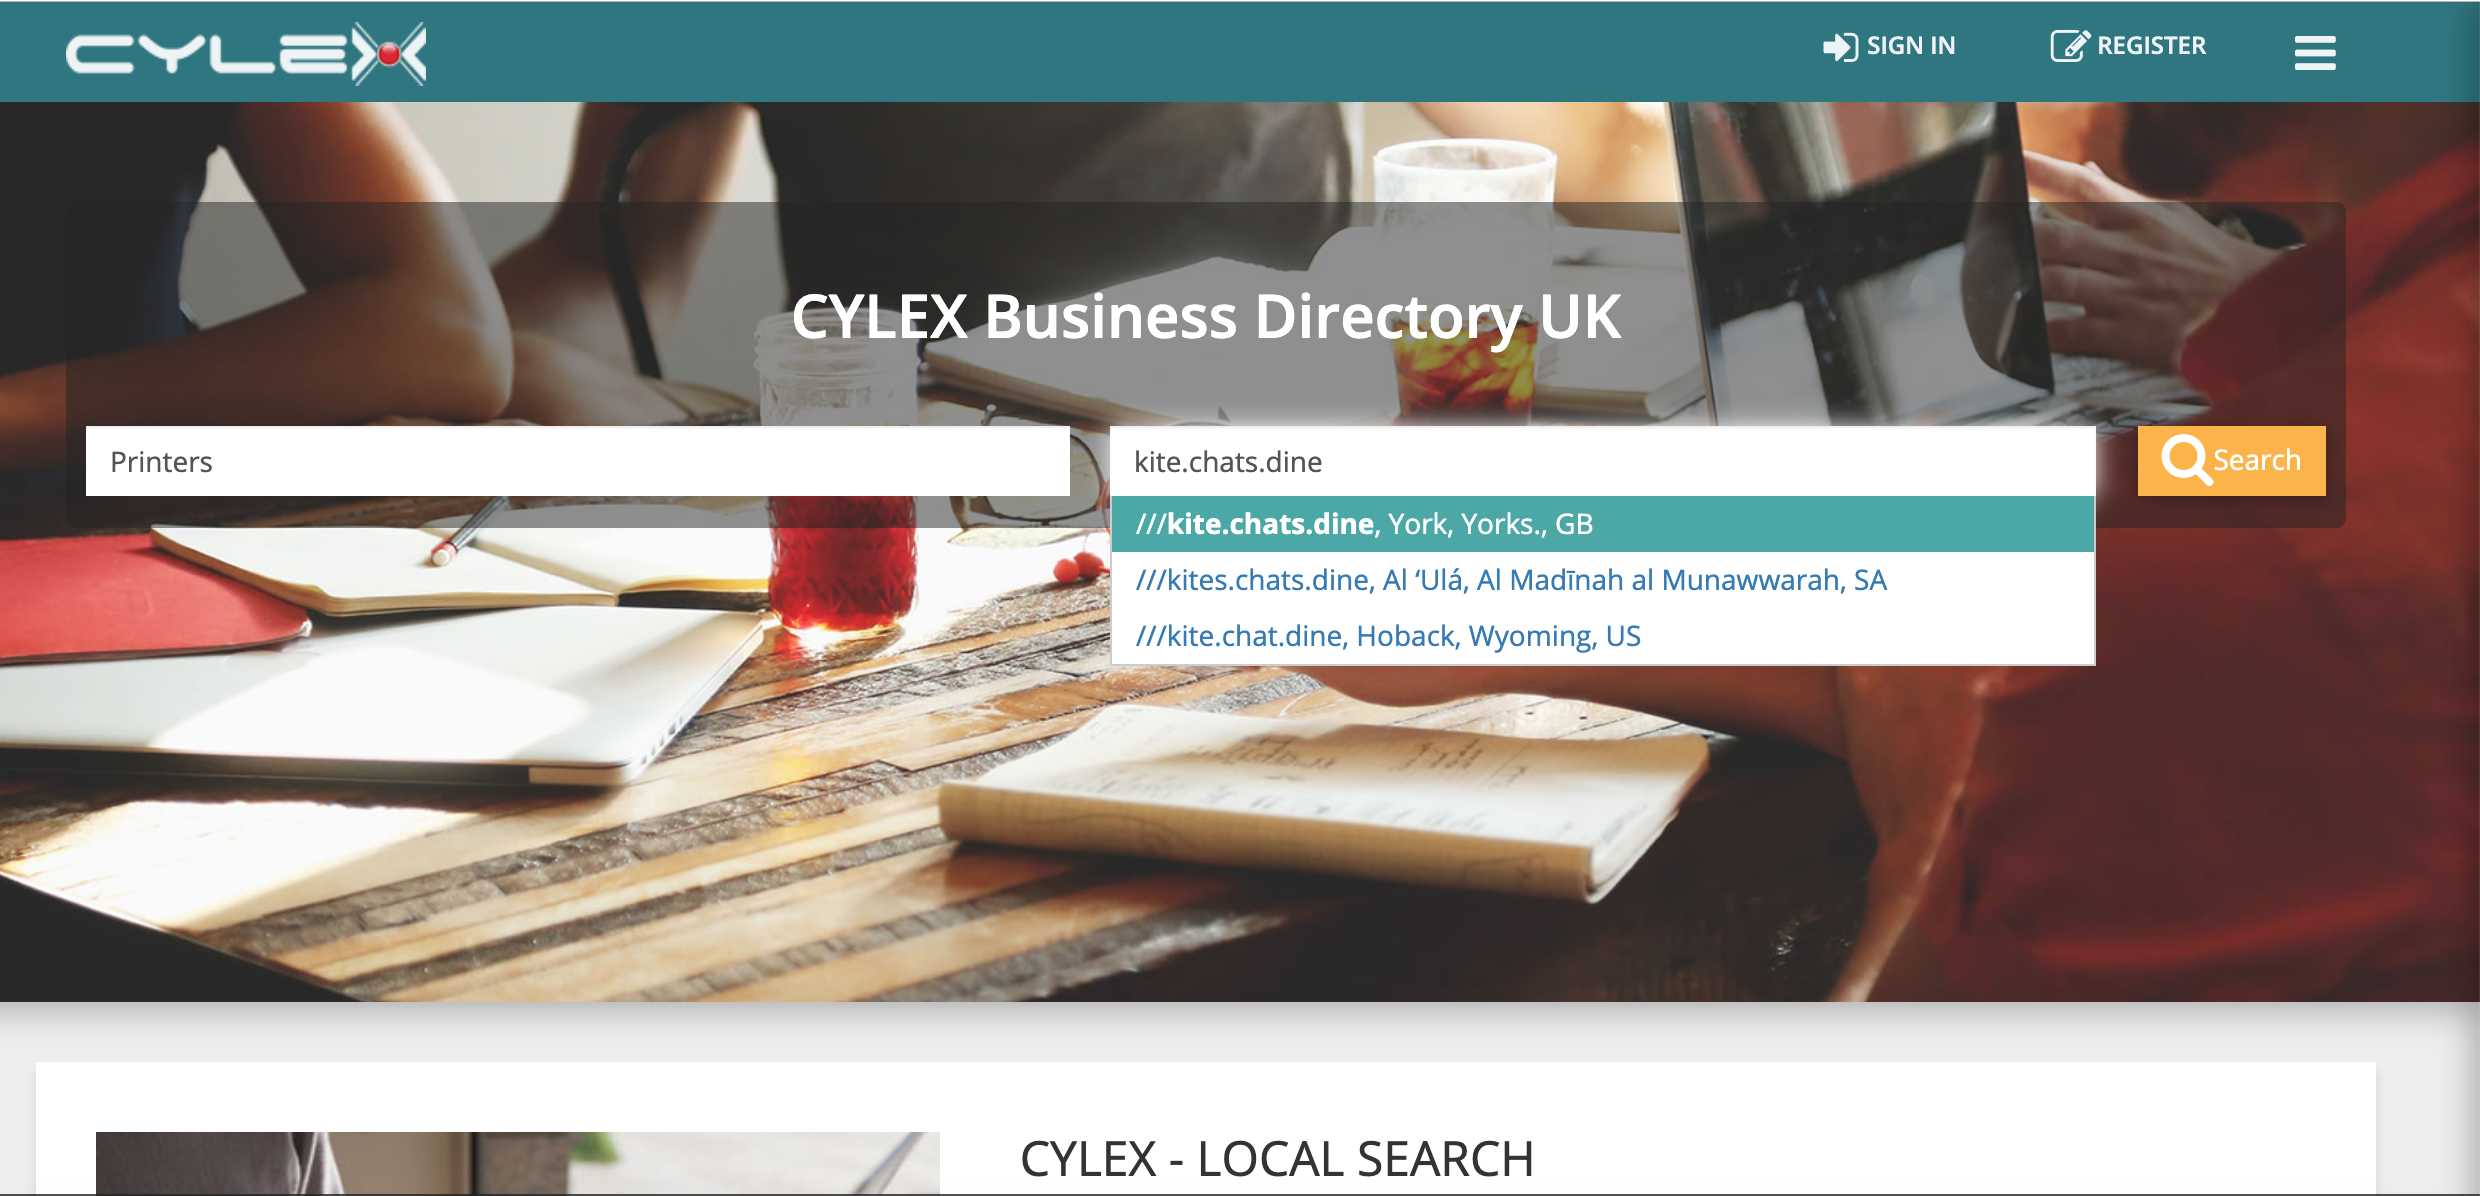 Digital business directory Cylex integrates what3words